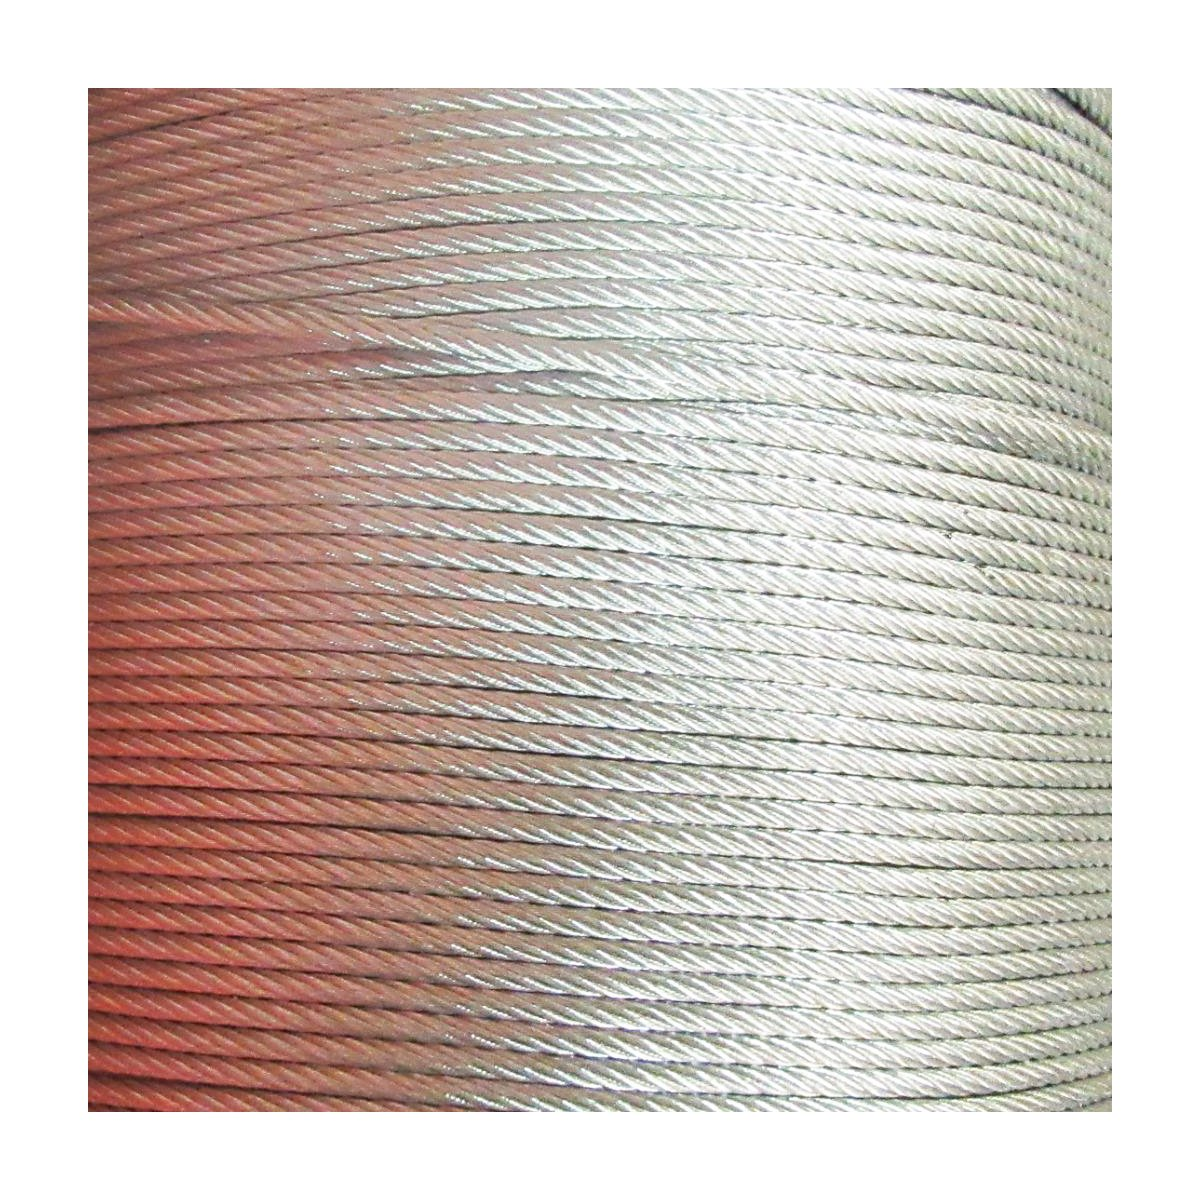 5mm (6 x 12 f.c.) GALVANIZED STEEL WIRE ROPE METAL CABLE HARDWARE (10 Metres) Warrenpoint Hardware